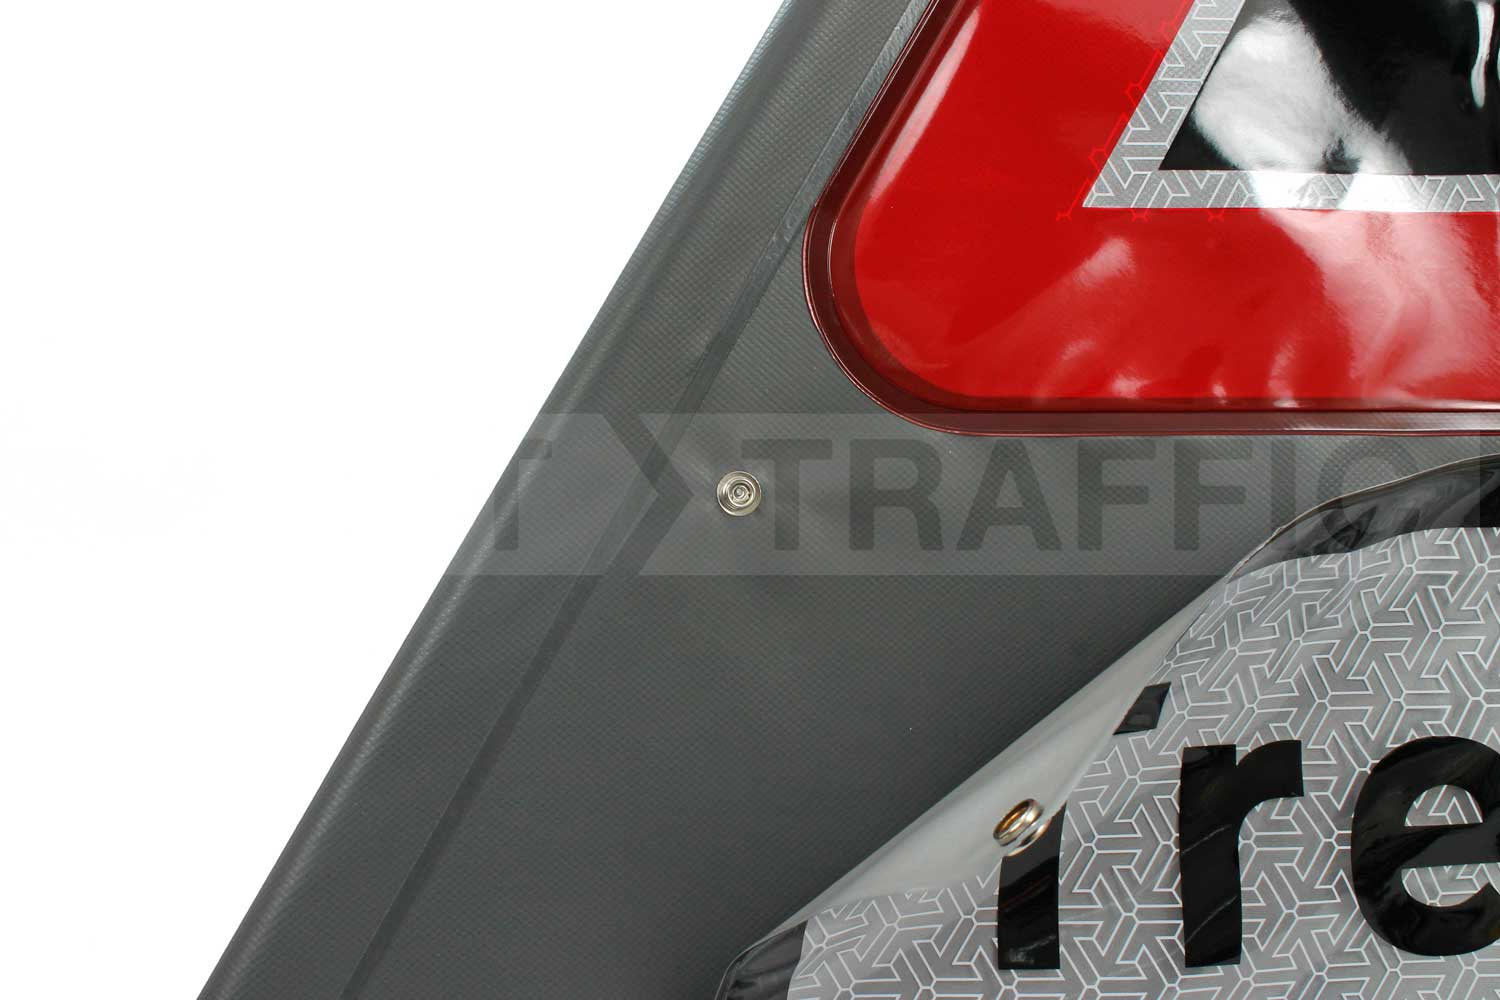 Photo Of Roll Up Sign On Verge